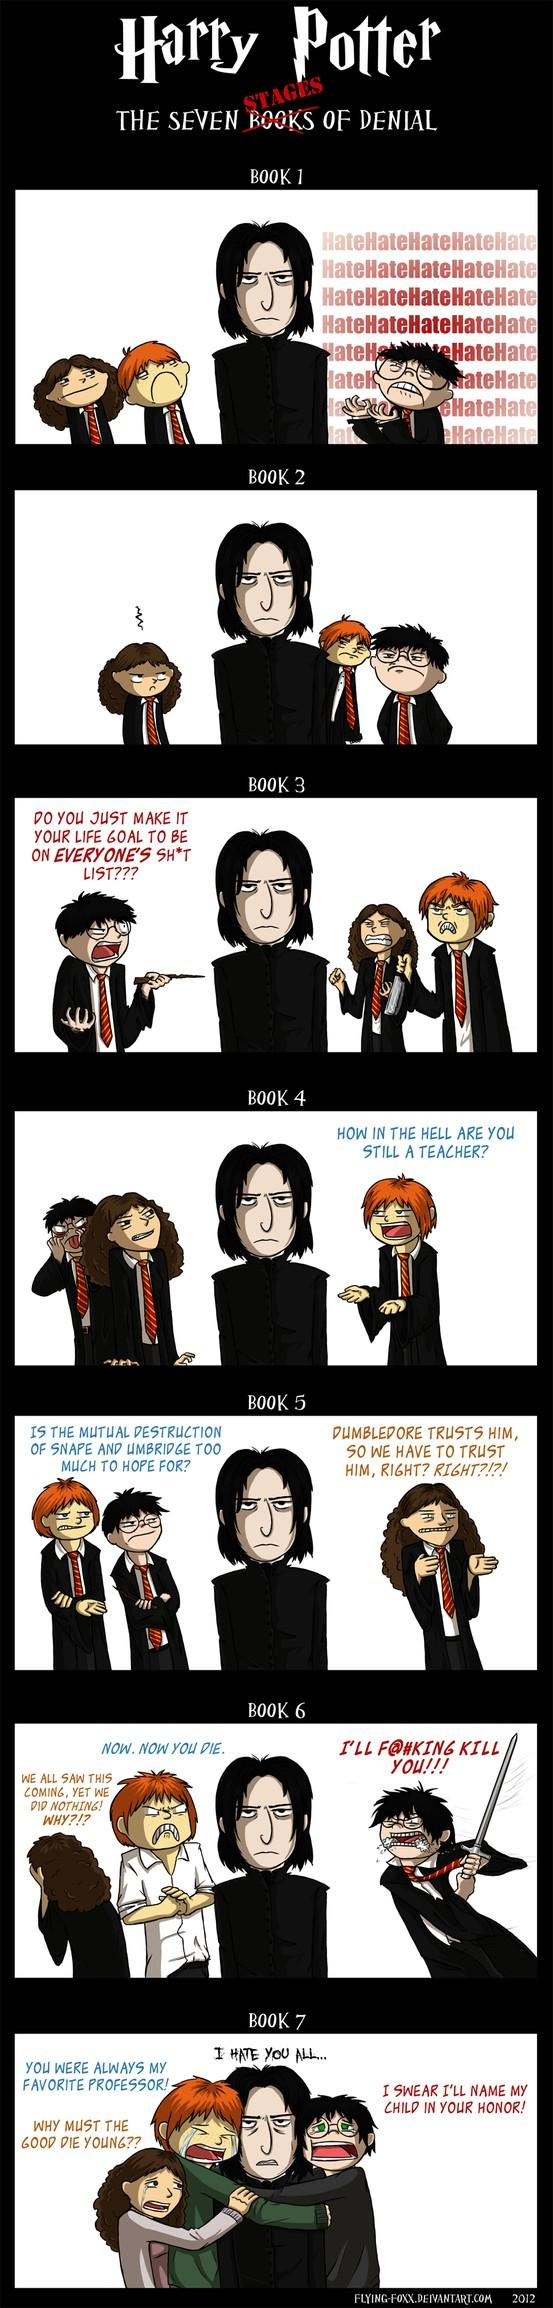 Harry Potter - The 7 Books of Denial... -   Misc